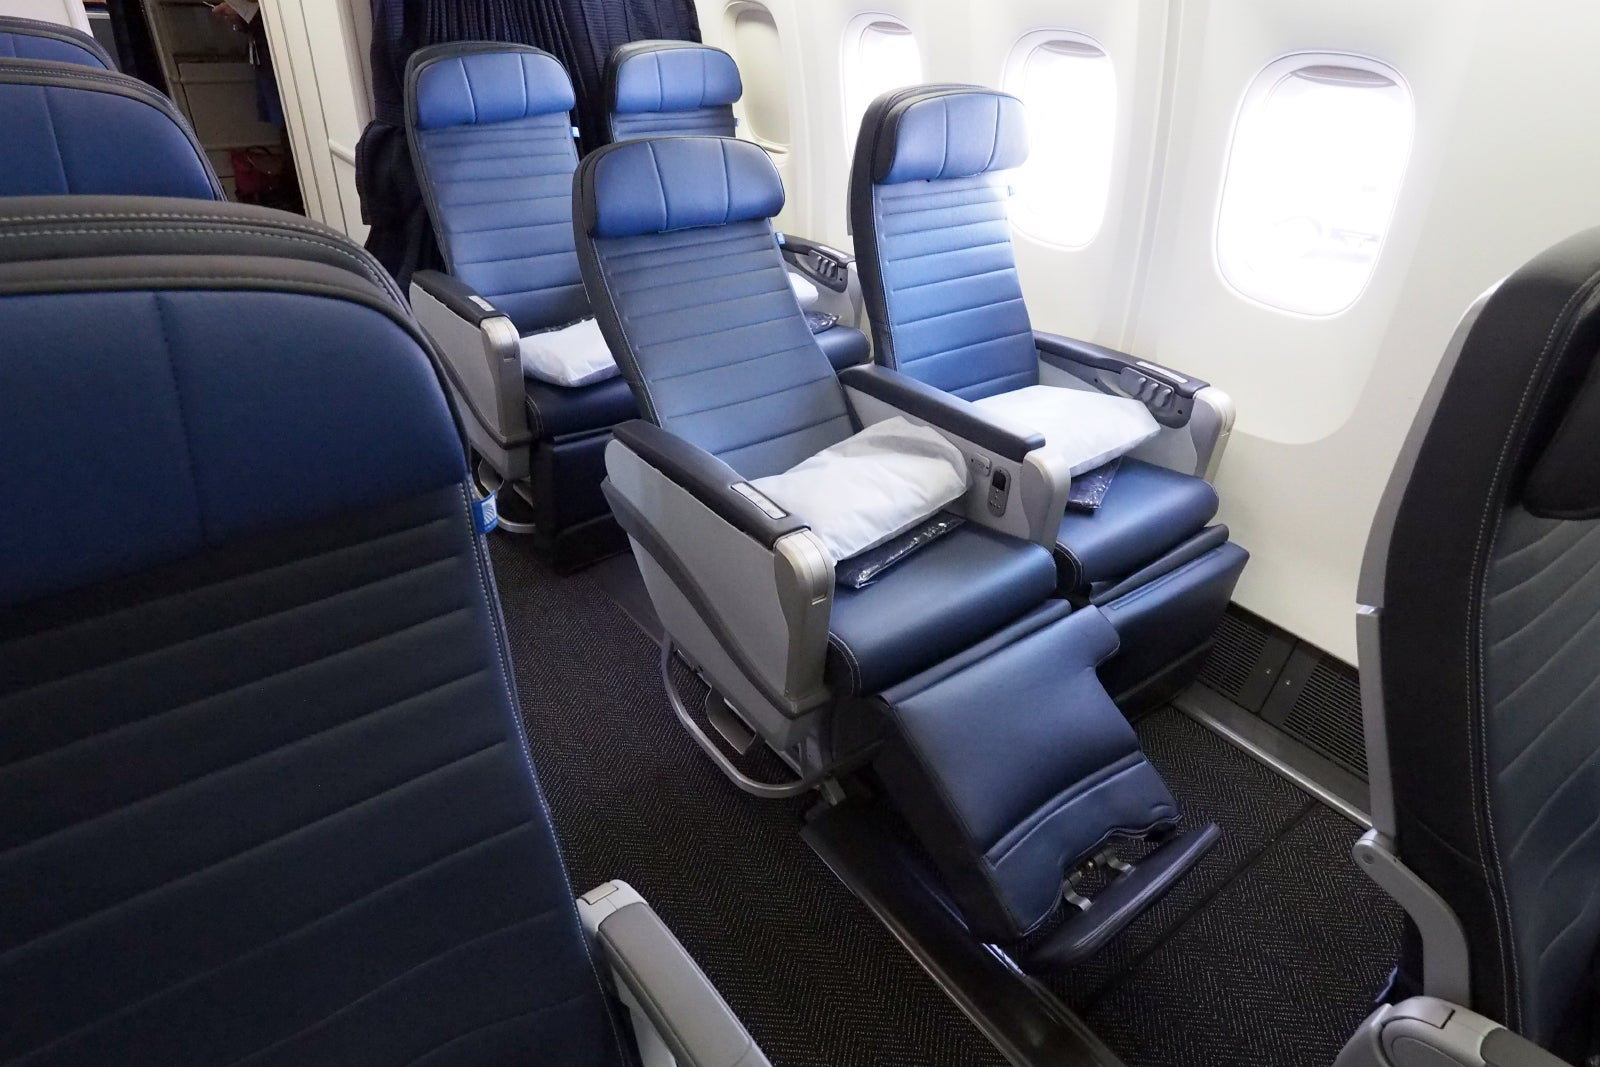 The Closest Thing You'll Get to Premium Economy on United